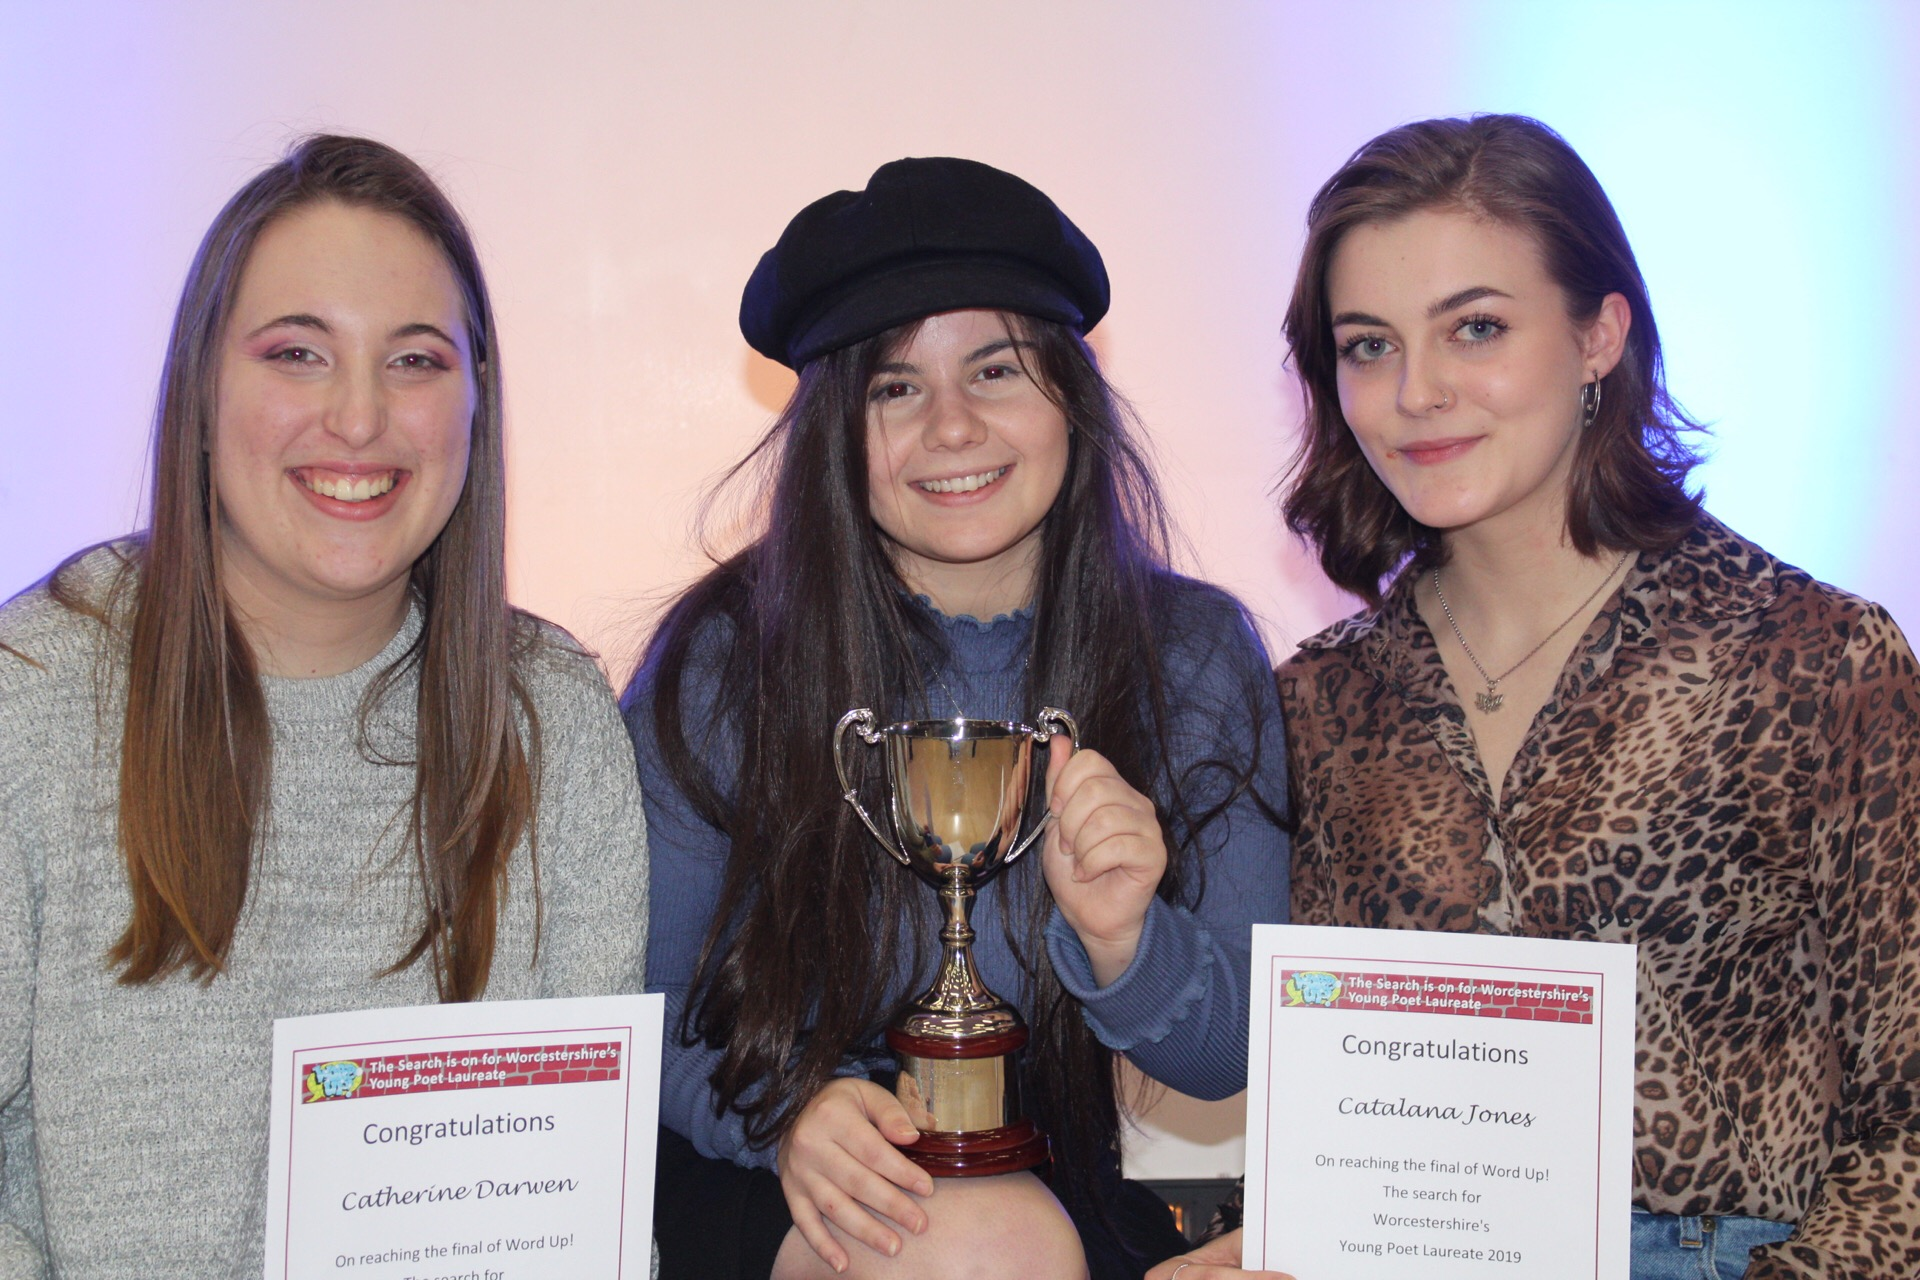 •	Last year's winner Sophie Green and runners up Catherine Darwen and Cat Jones